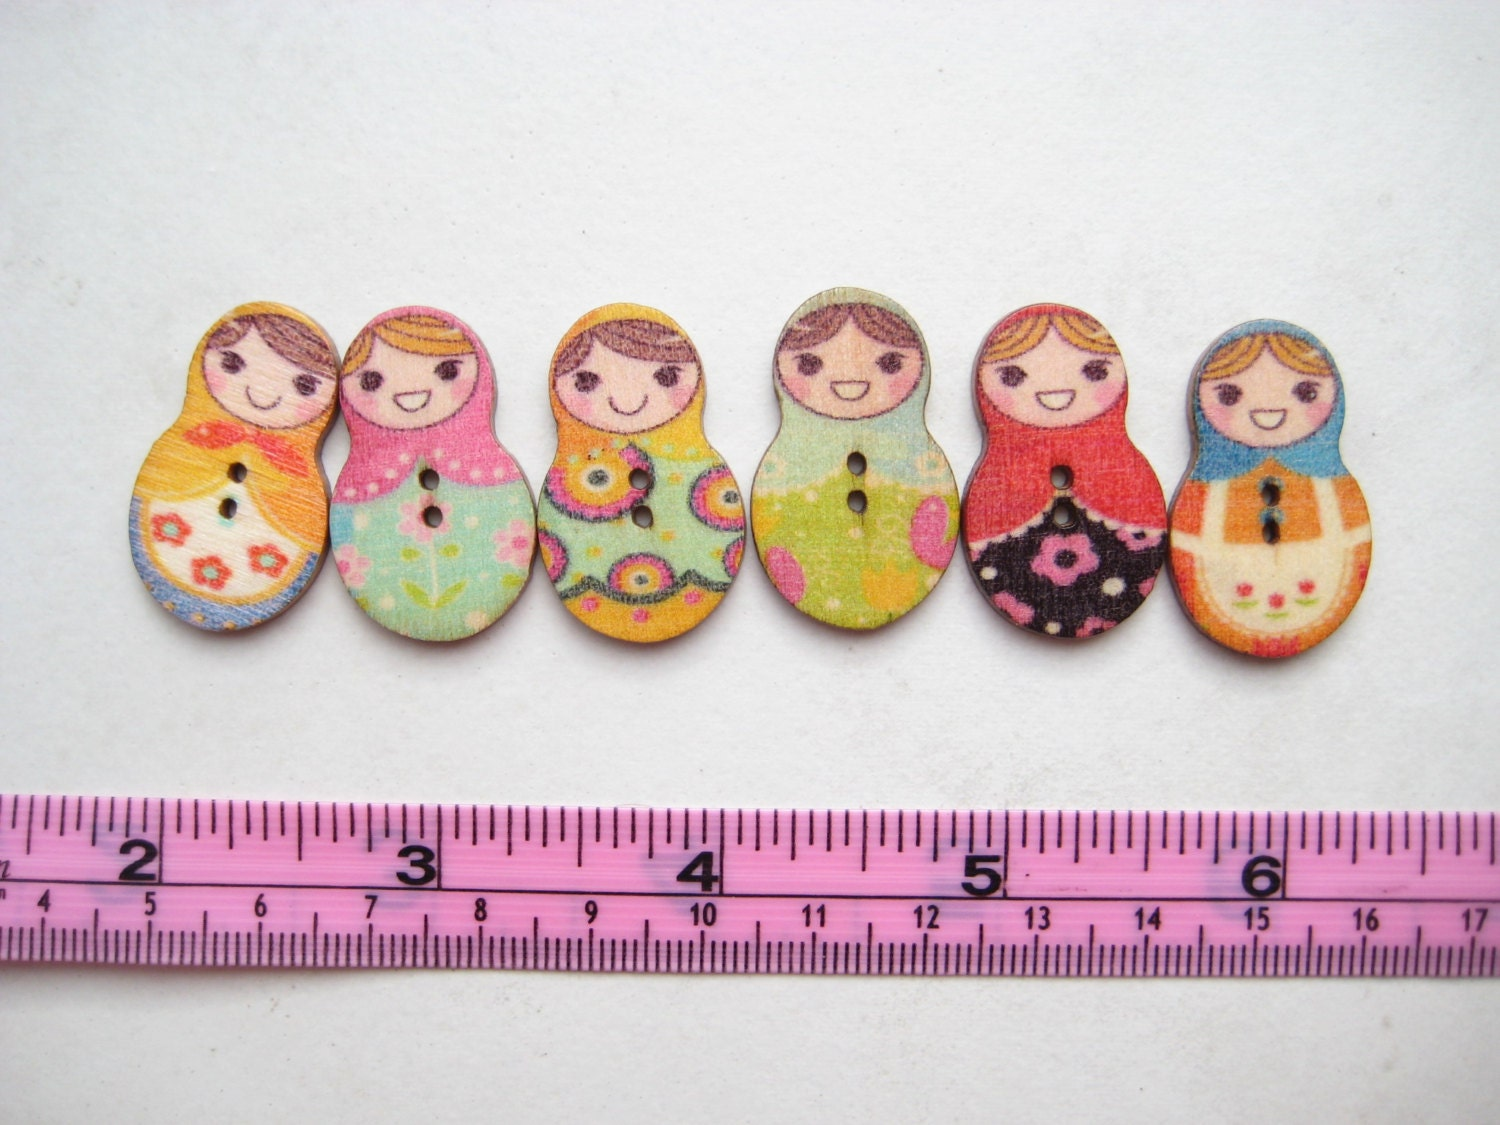 2 Trous 5 Boutons Ronds en Bois Chat Kitty 23mm Couture Scrapbooking